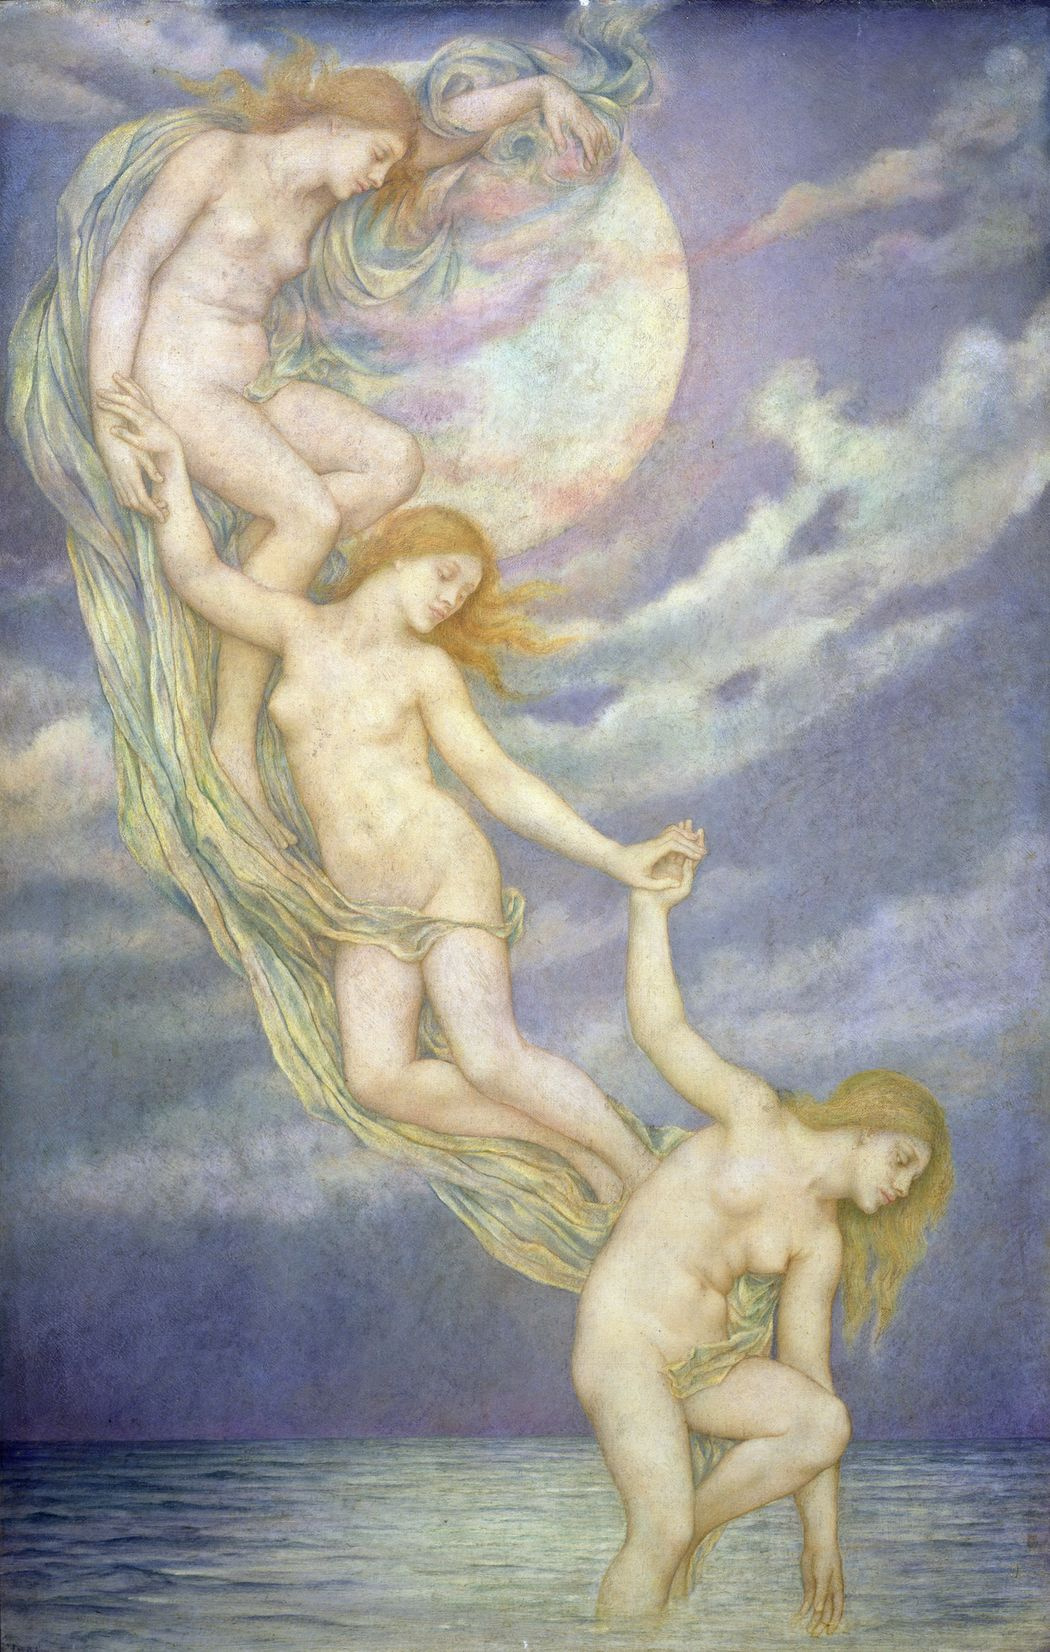 Evelyn De Morgan (Pickering). The rays of the moonlight, descending into the sea